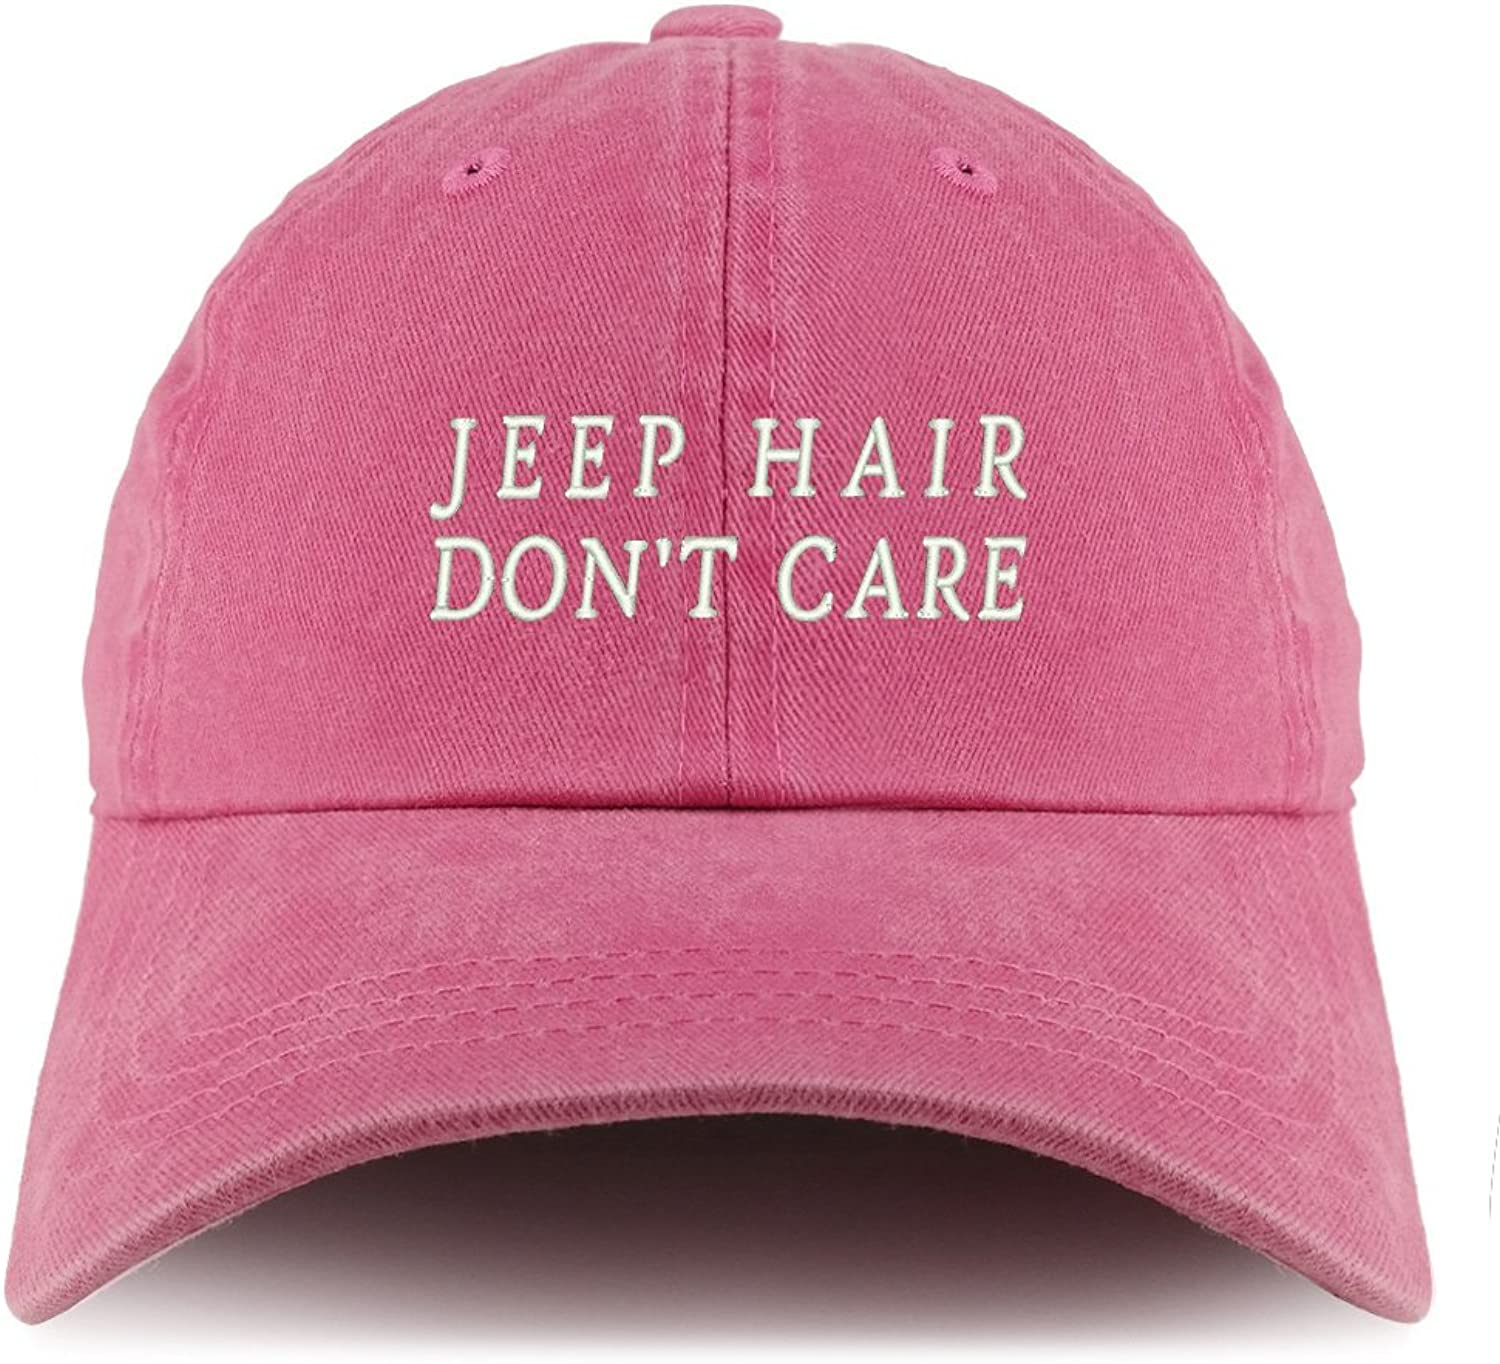 Trendy Apparel Shop Jeep Hair Don't Care Embroidered Pigment Dyed Unstructured Cap